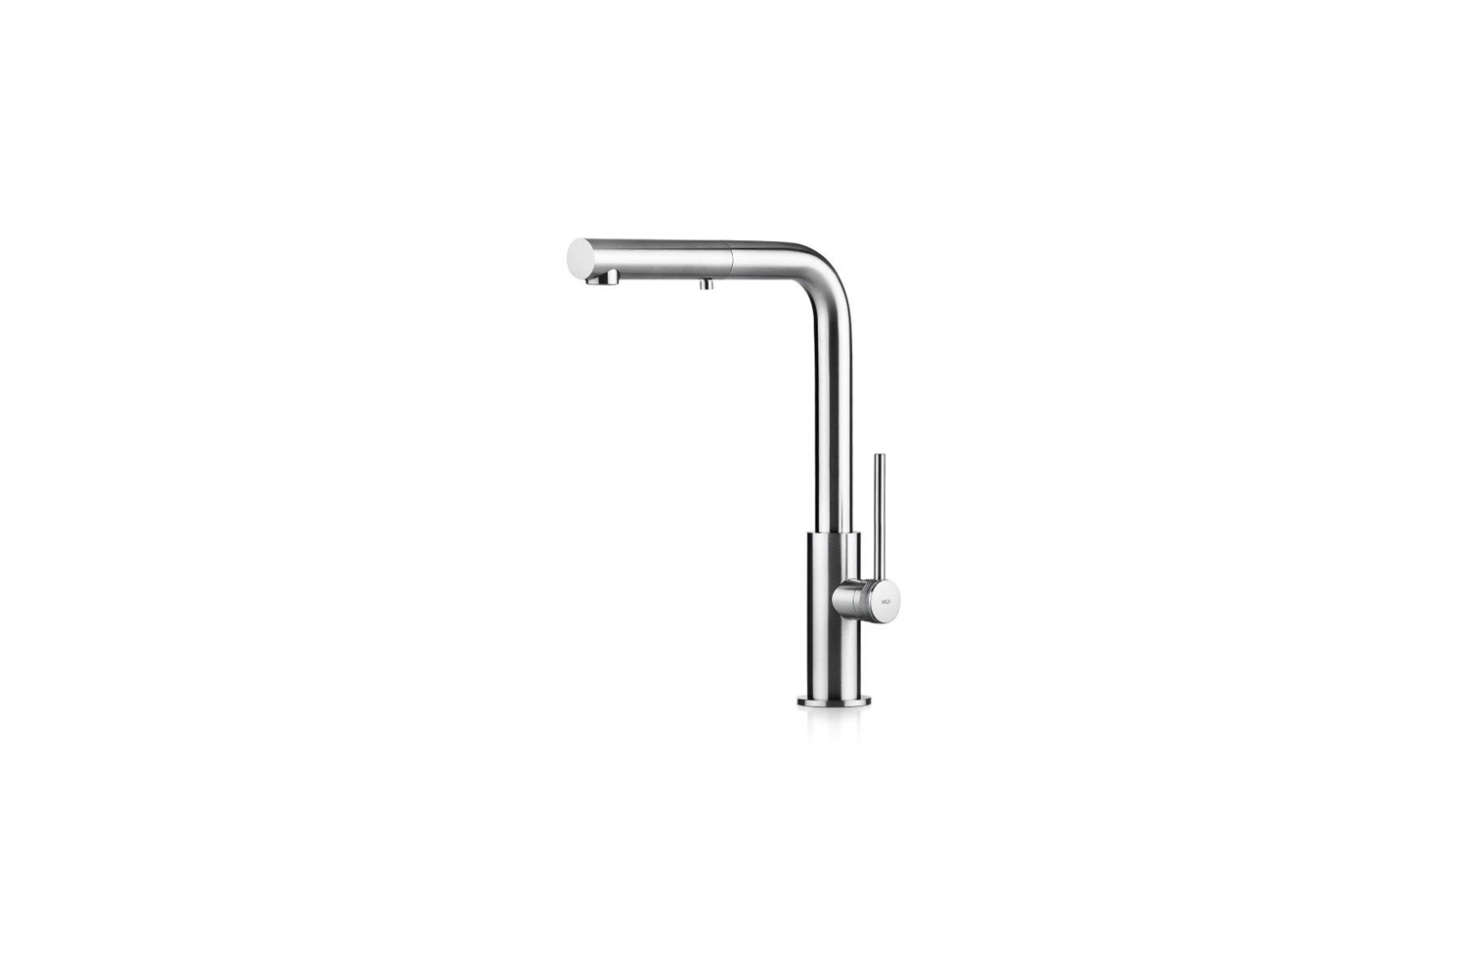 10 Best Modern Single Lever L Shaped Straight Kitchen Faucets - Colorful-kitchen-faucets-from-zucchetti